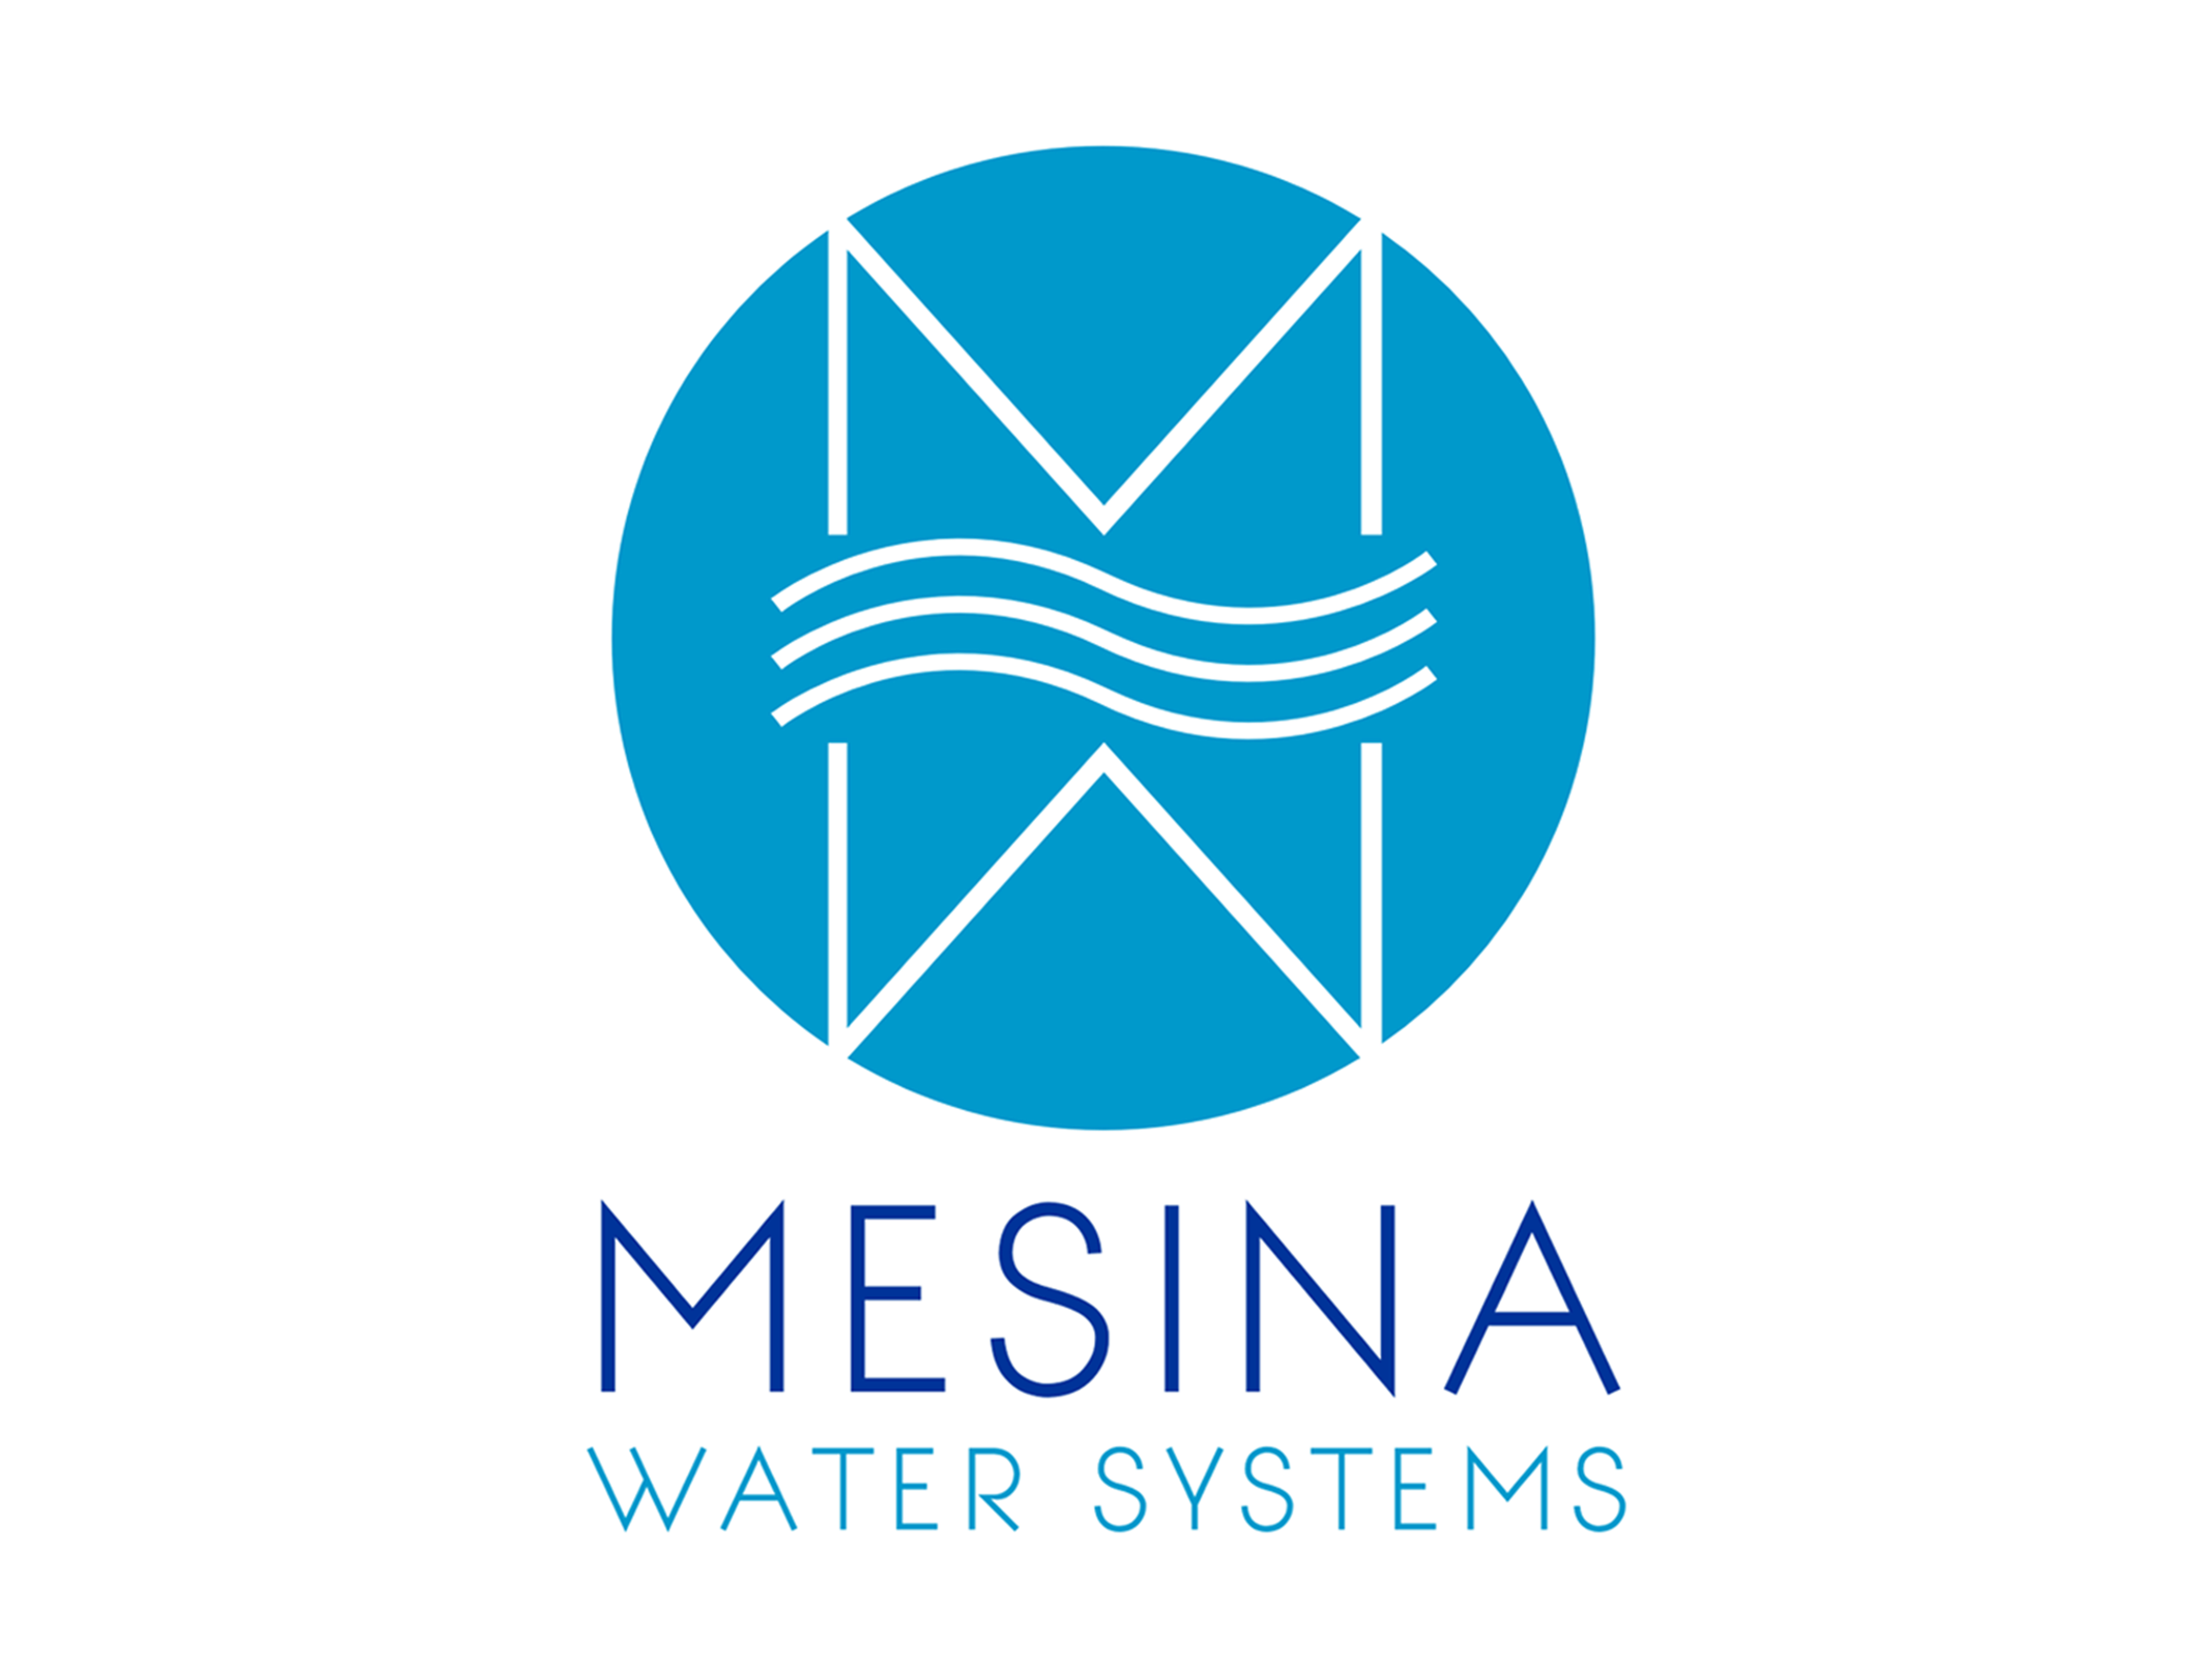 017. MESINA WATER SYSTEMS